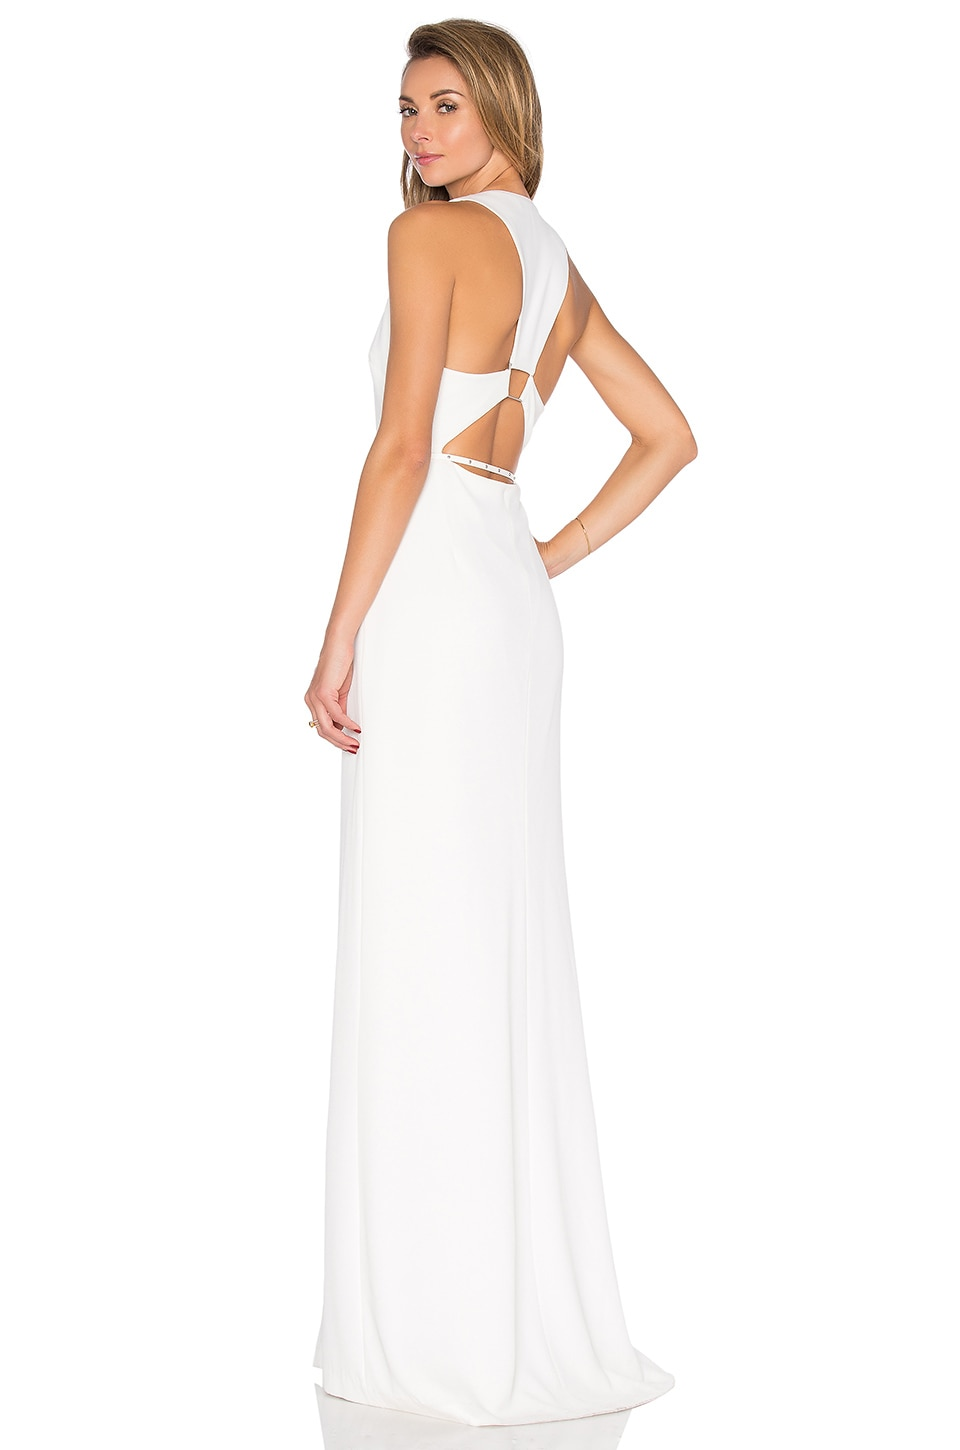 Halston Heritage Trapezoid Back Dress in Linen White | REVOLVE